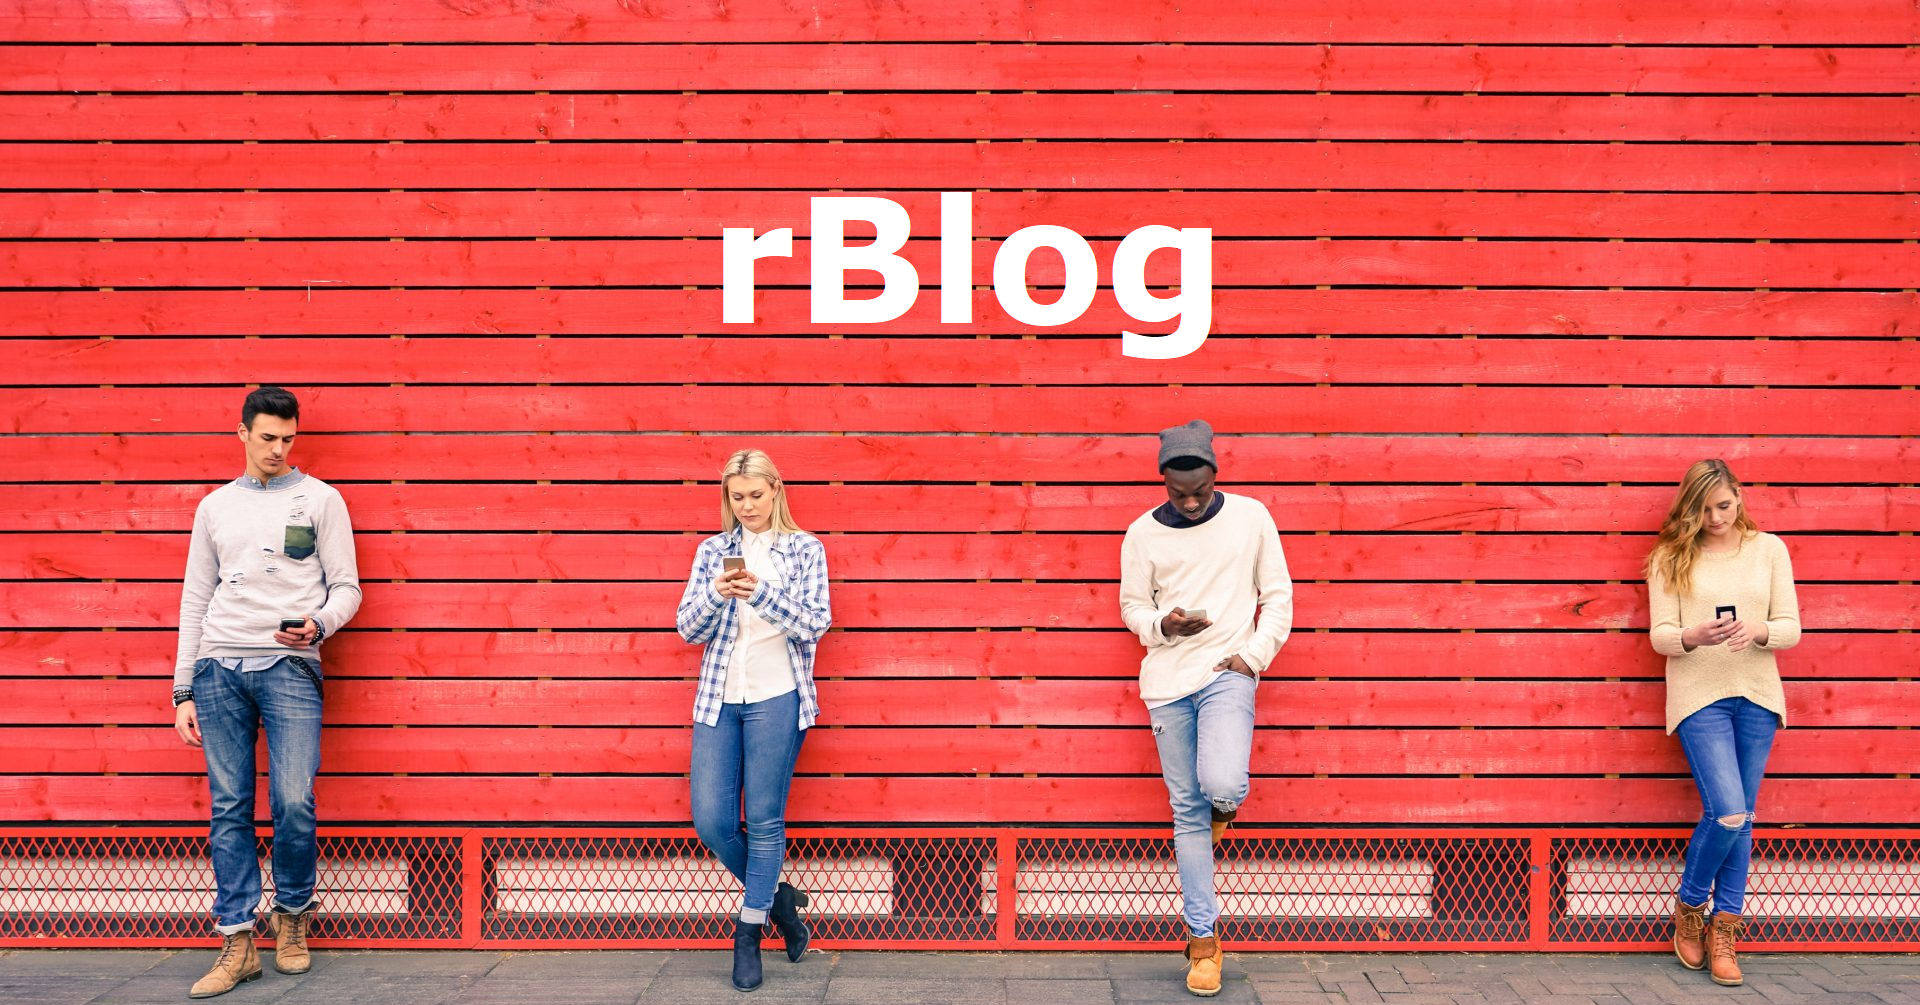 Riding the wave of marketing trends in 2018 – rBlog